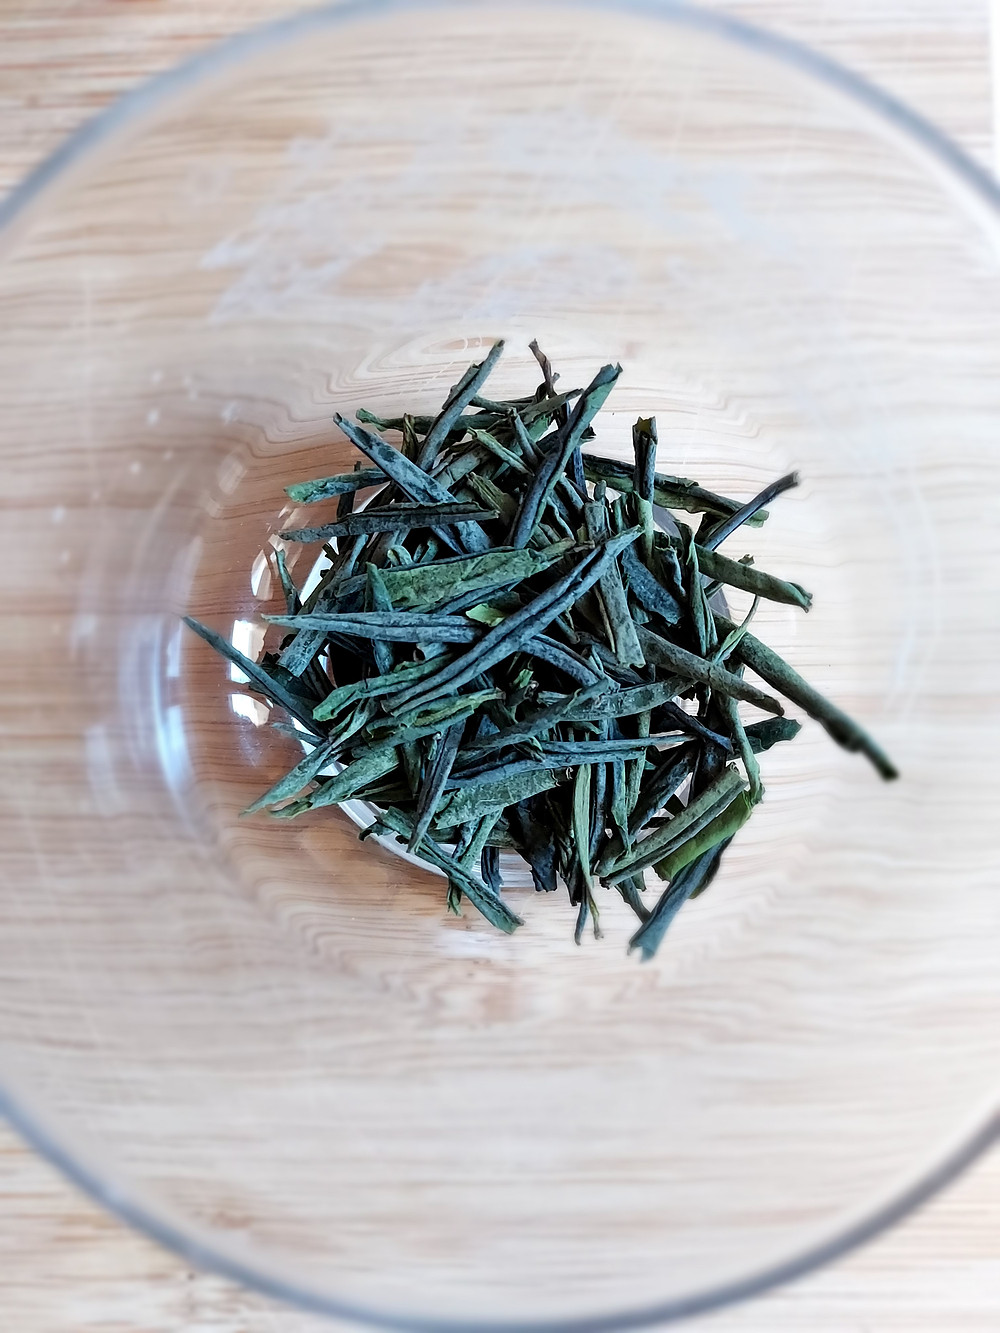 Melon Seed green tea leaves in a cup